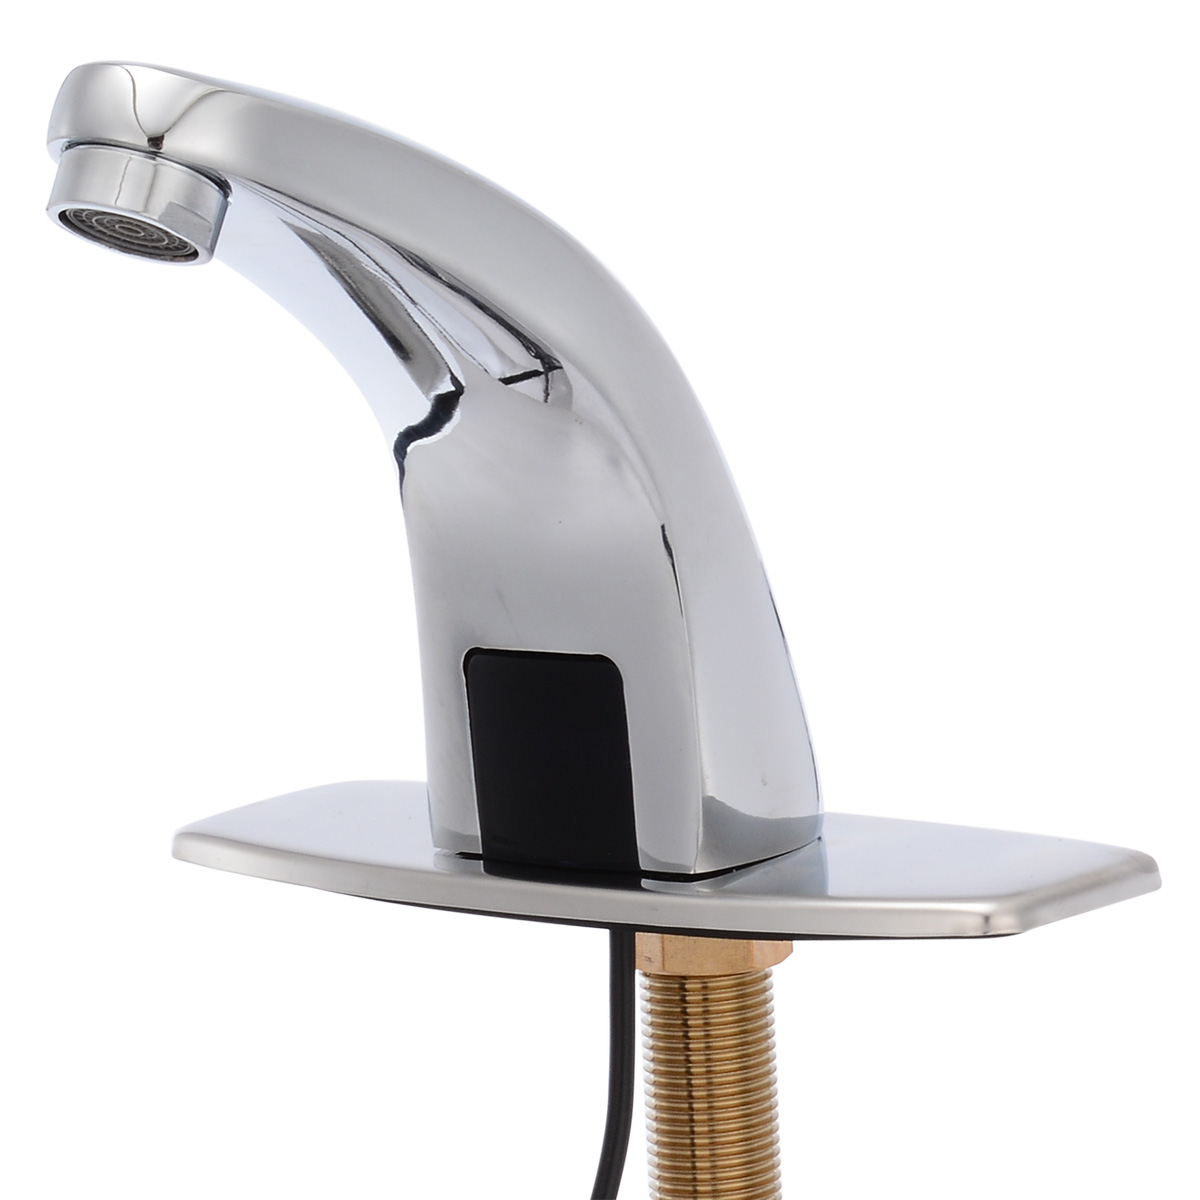 Full Automatic Sensor Faucet Copper Bathroom Basin Faucets Automatic Sink  Mixers Sensor Tap Mayitr